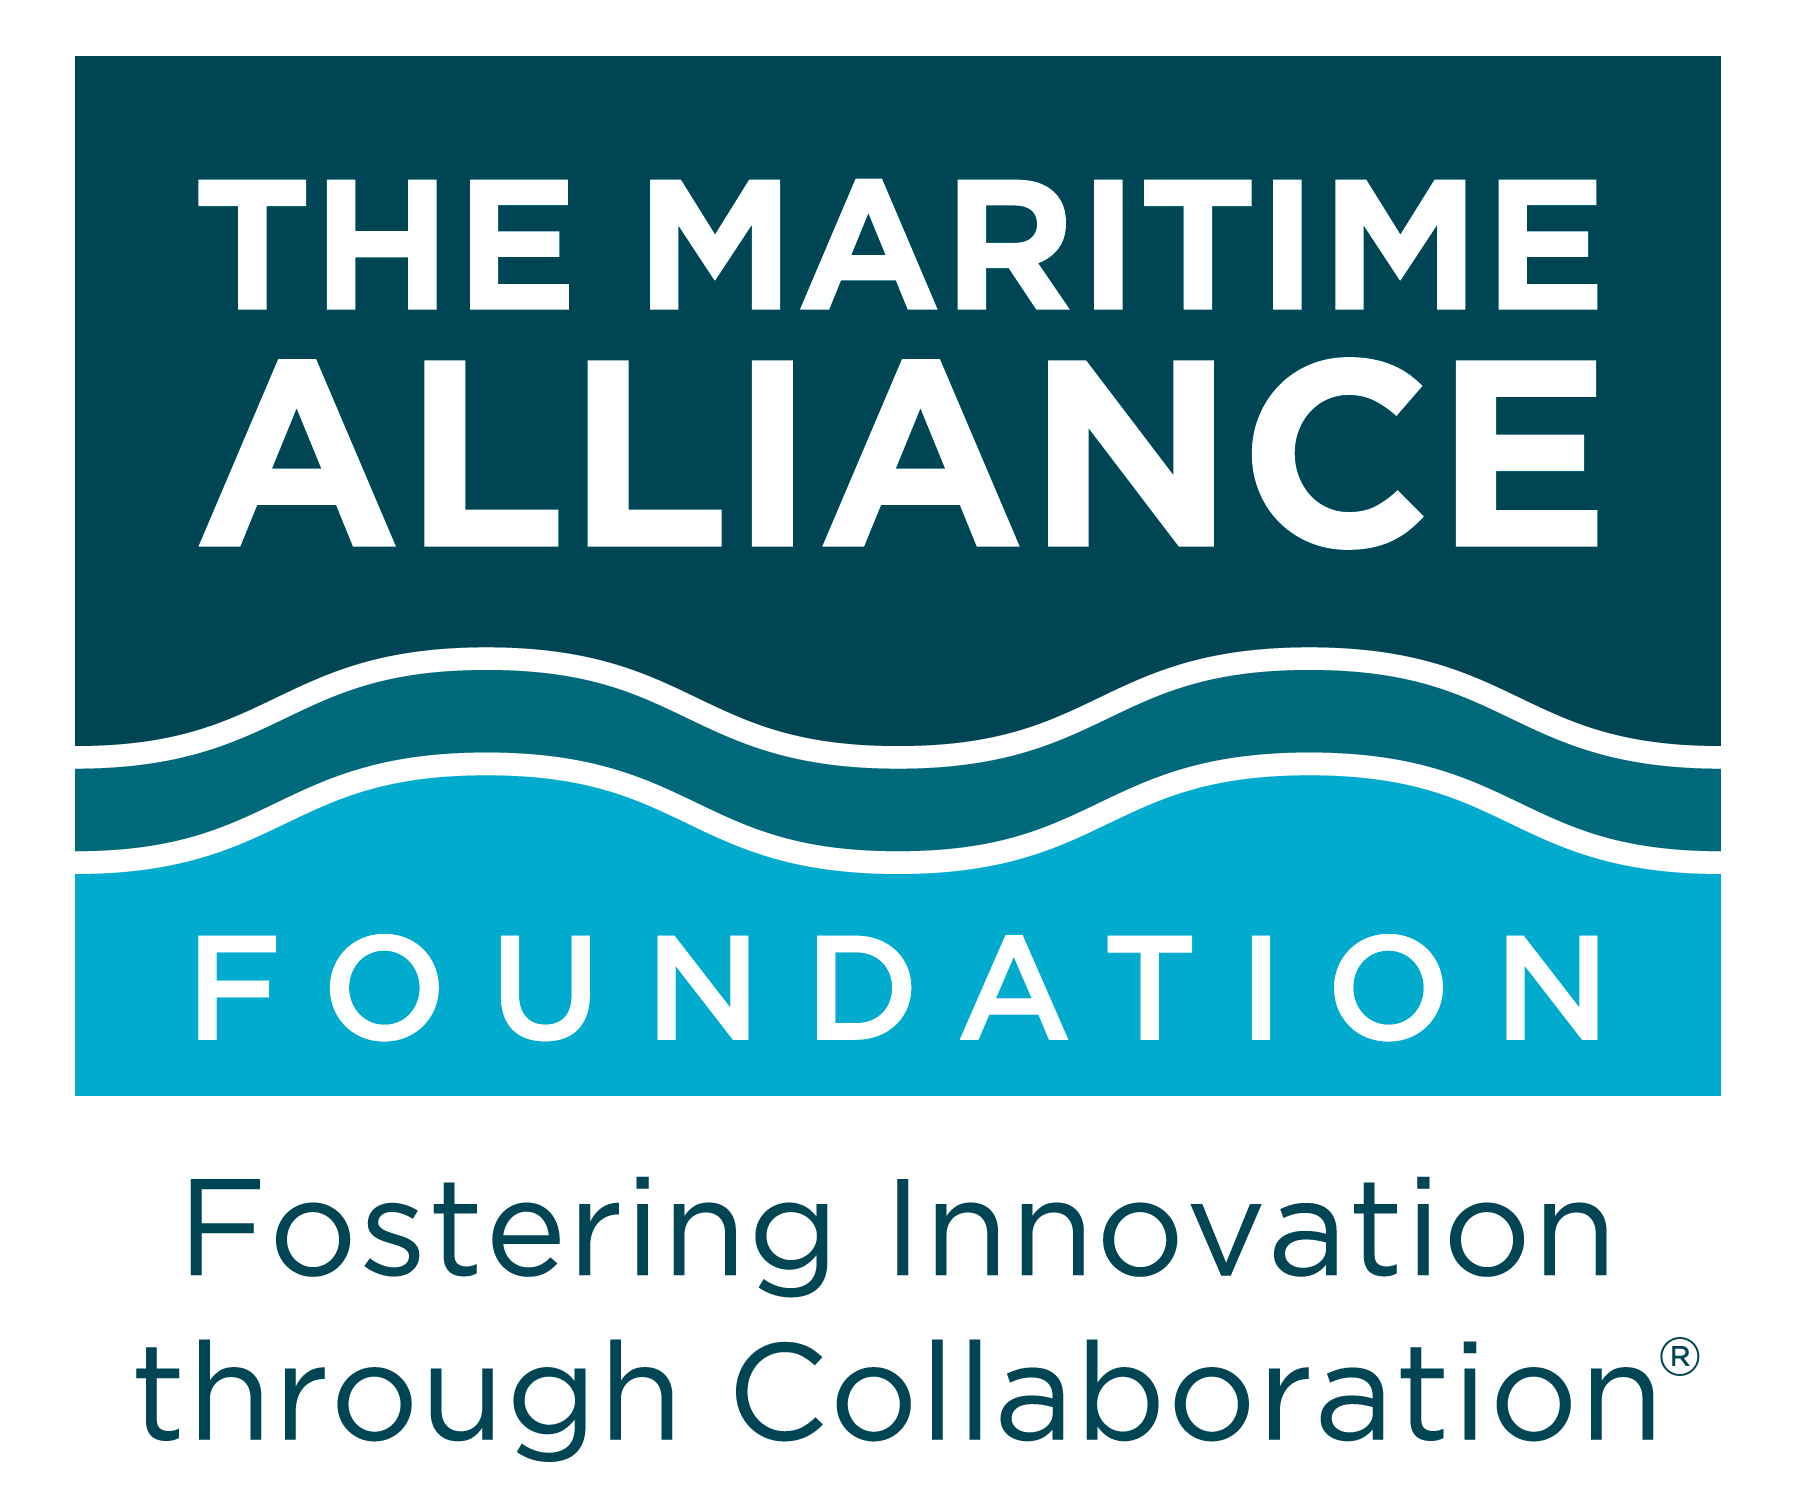 TheMaritimeAllianceFoundation_Logo_Tagline_Color.png